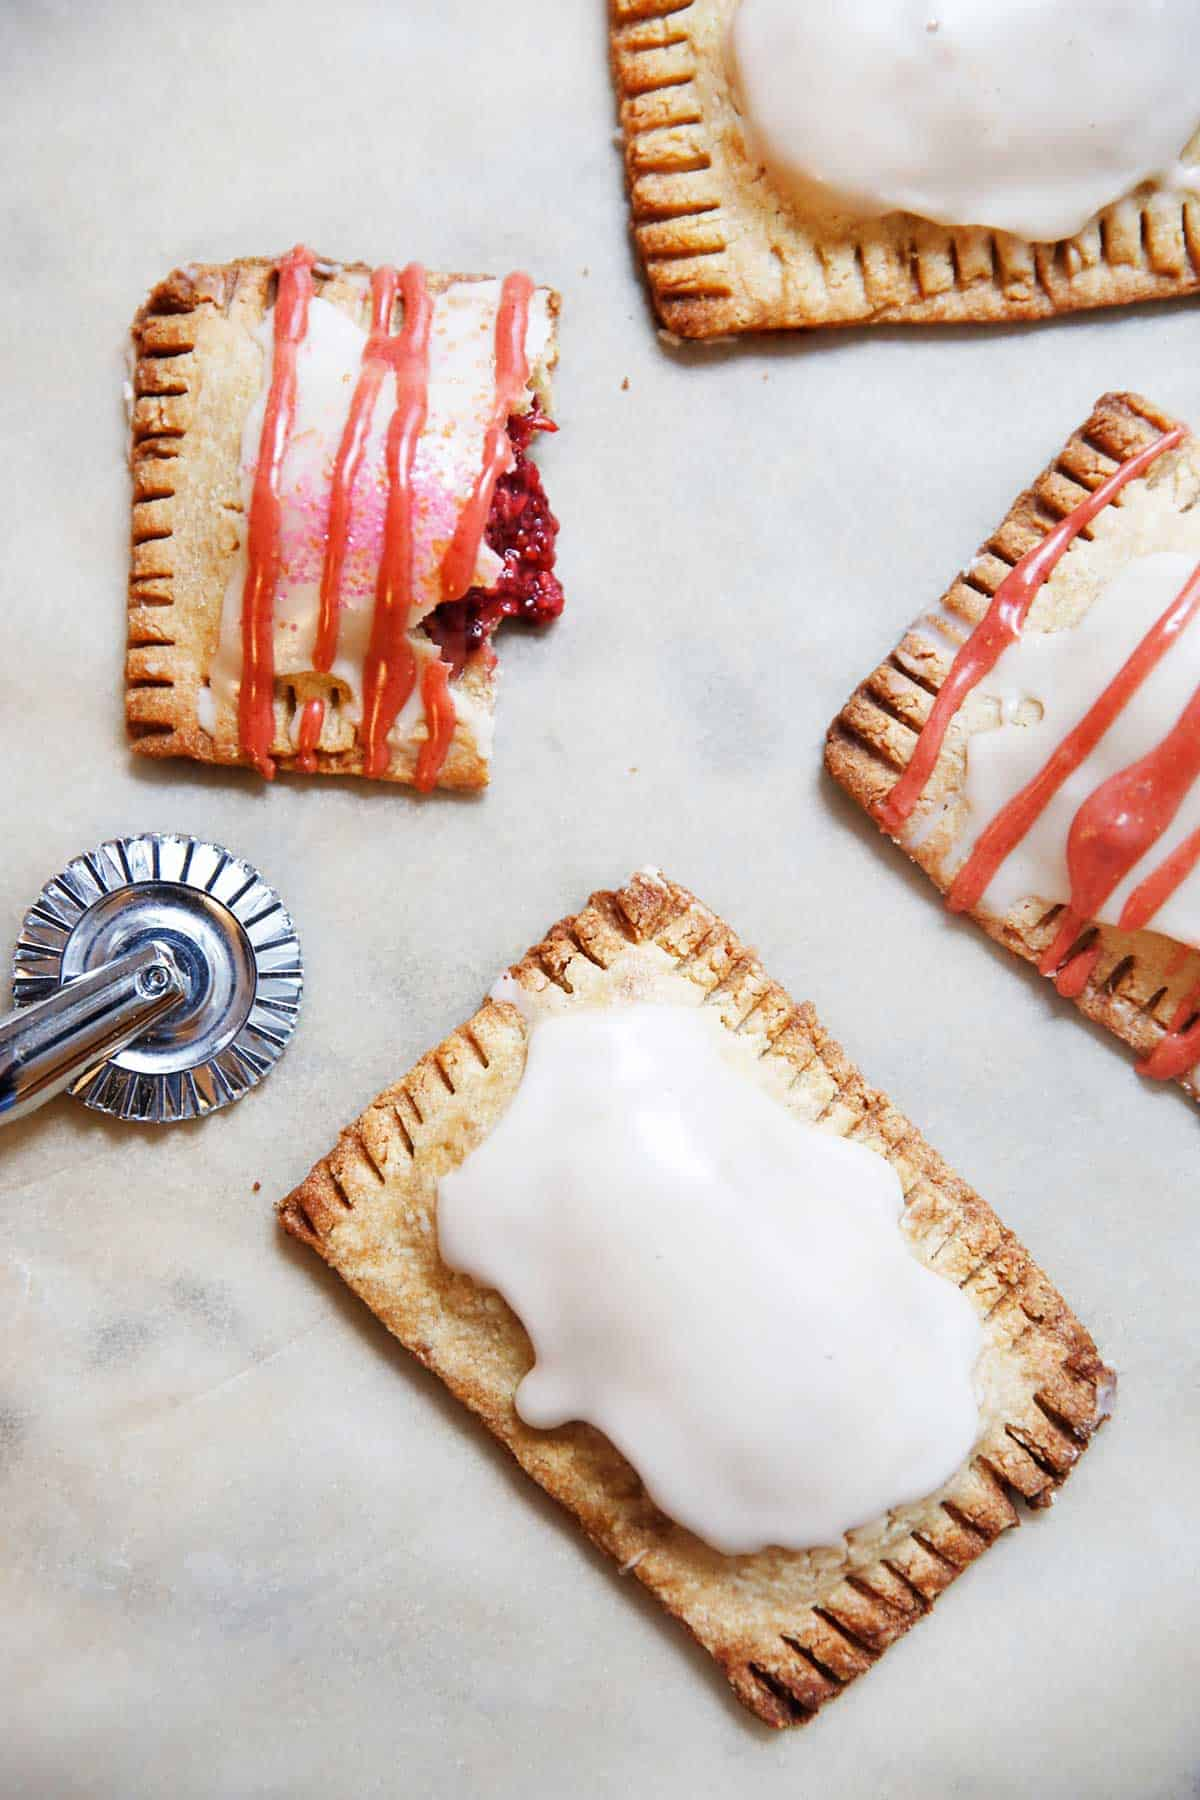 Homemade Pop Tarts frosted